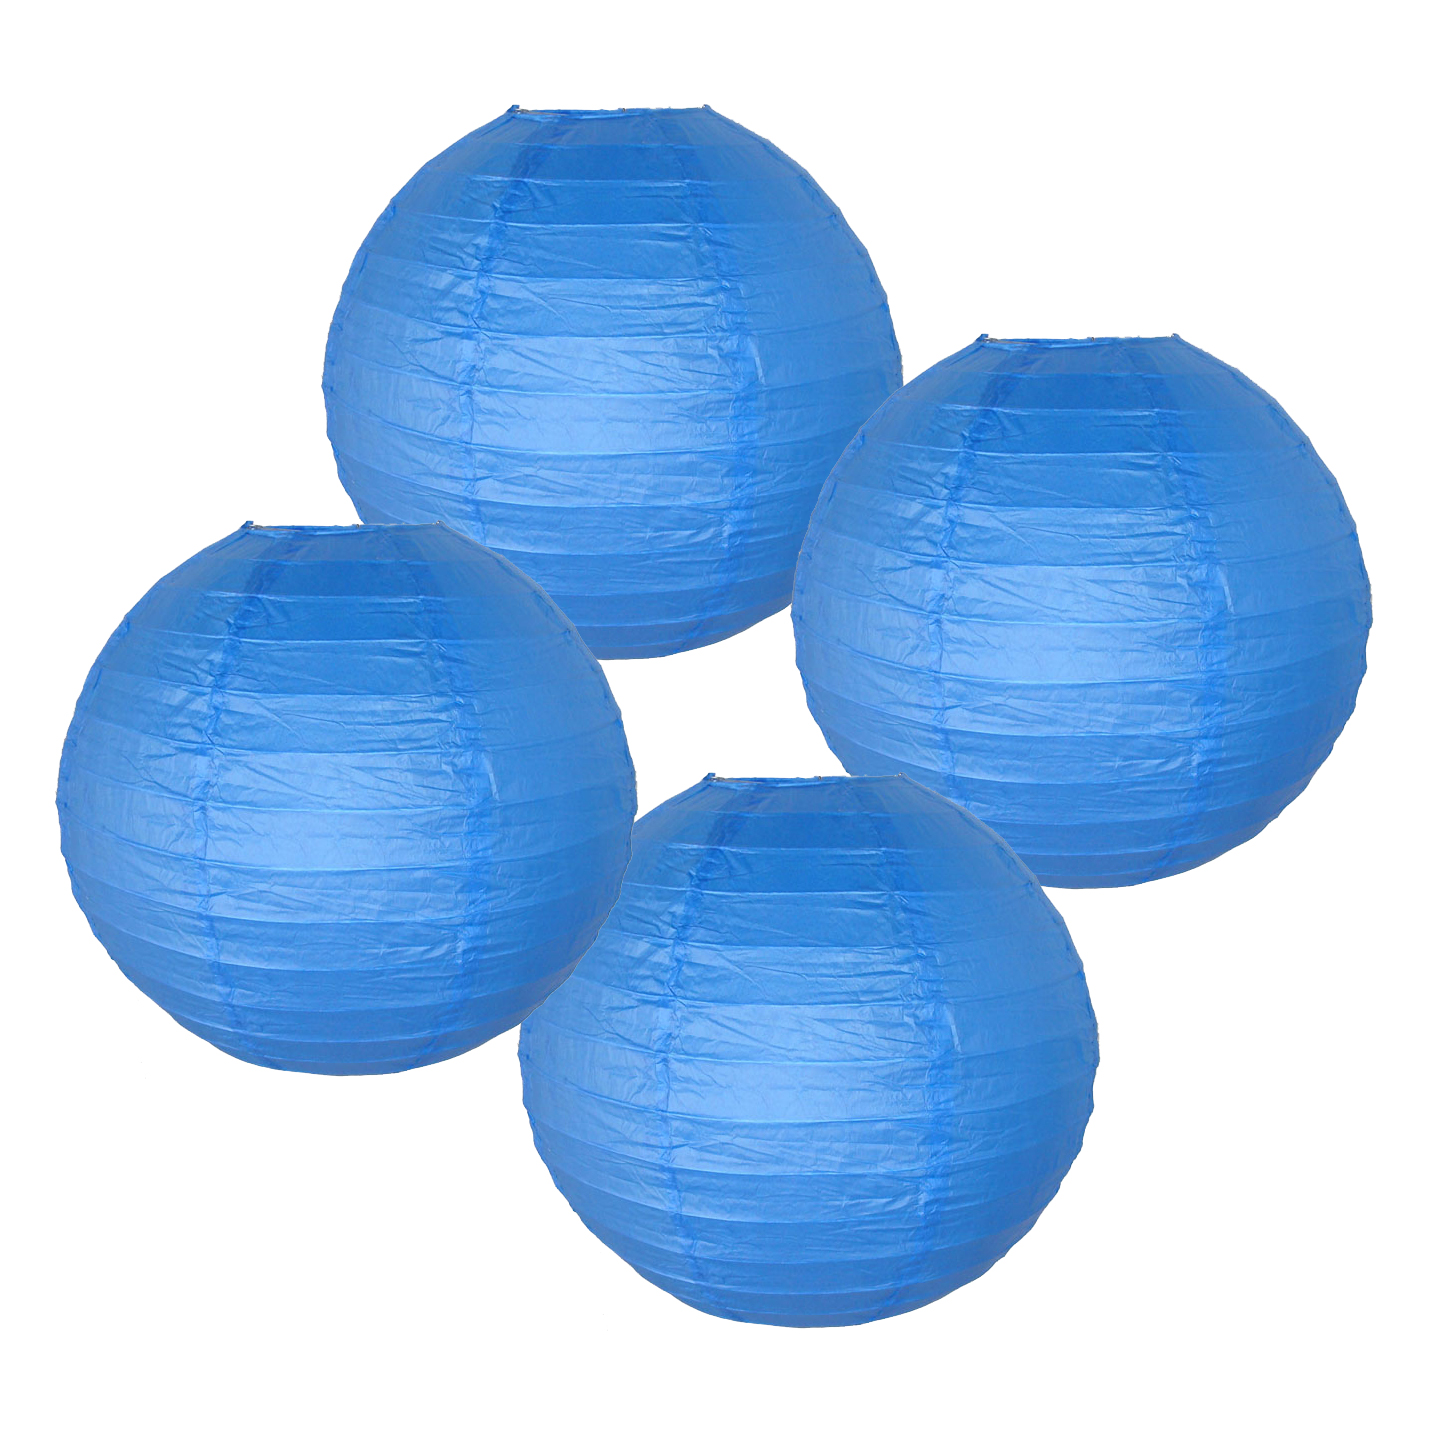 """Just Artifacts 16"""" Gold Chinese Japanese Paper Lanterns (Set of 4) - Decorative Round Chinese/Japanese Paper Lanterns for Birthday Parties, Weddings, Baby Showers, and Life Celebrations!"""